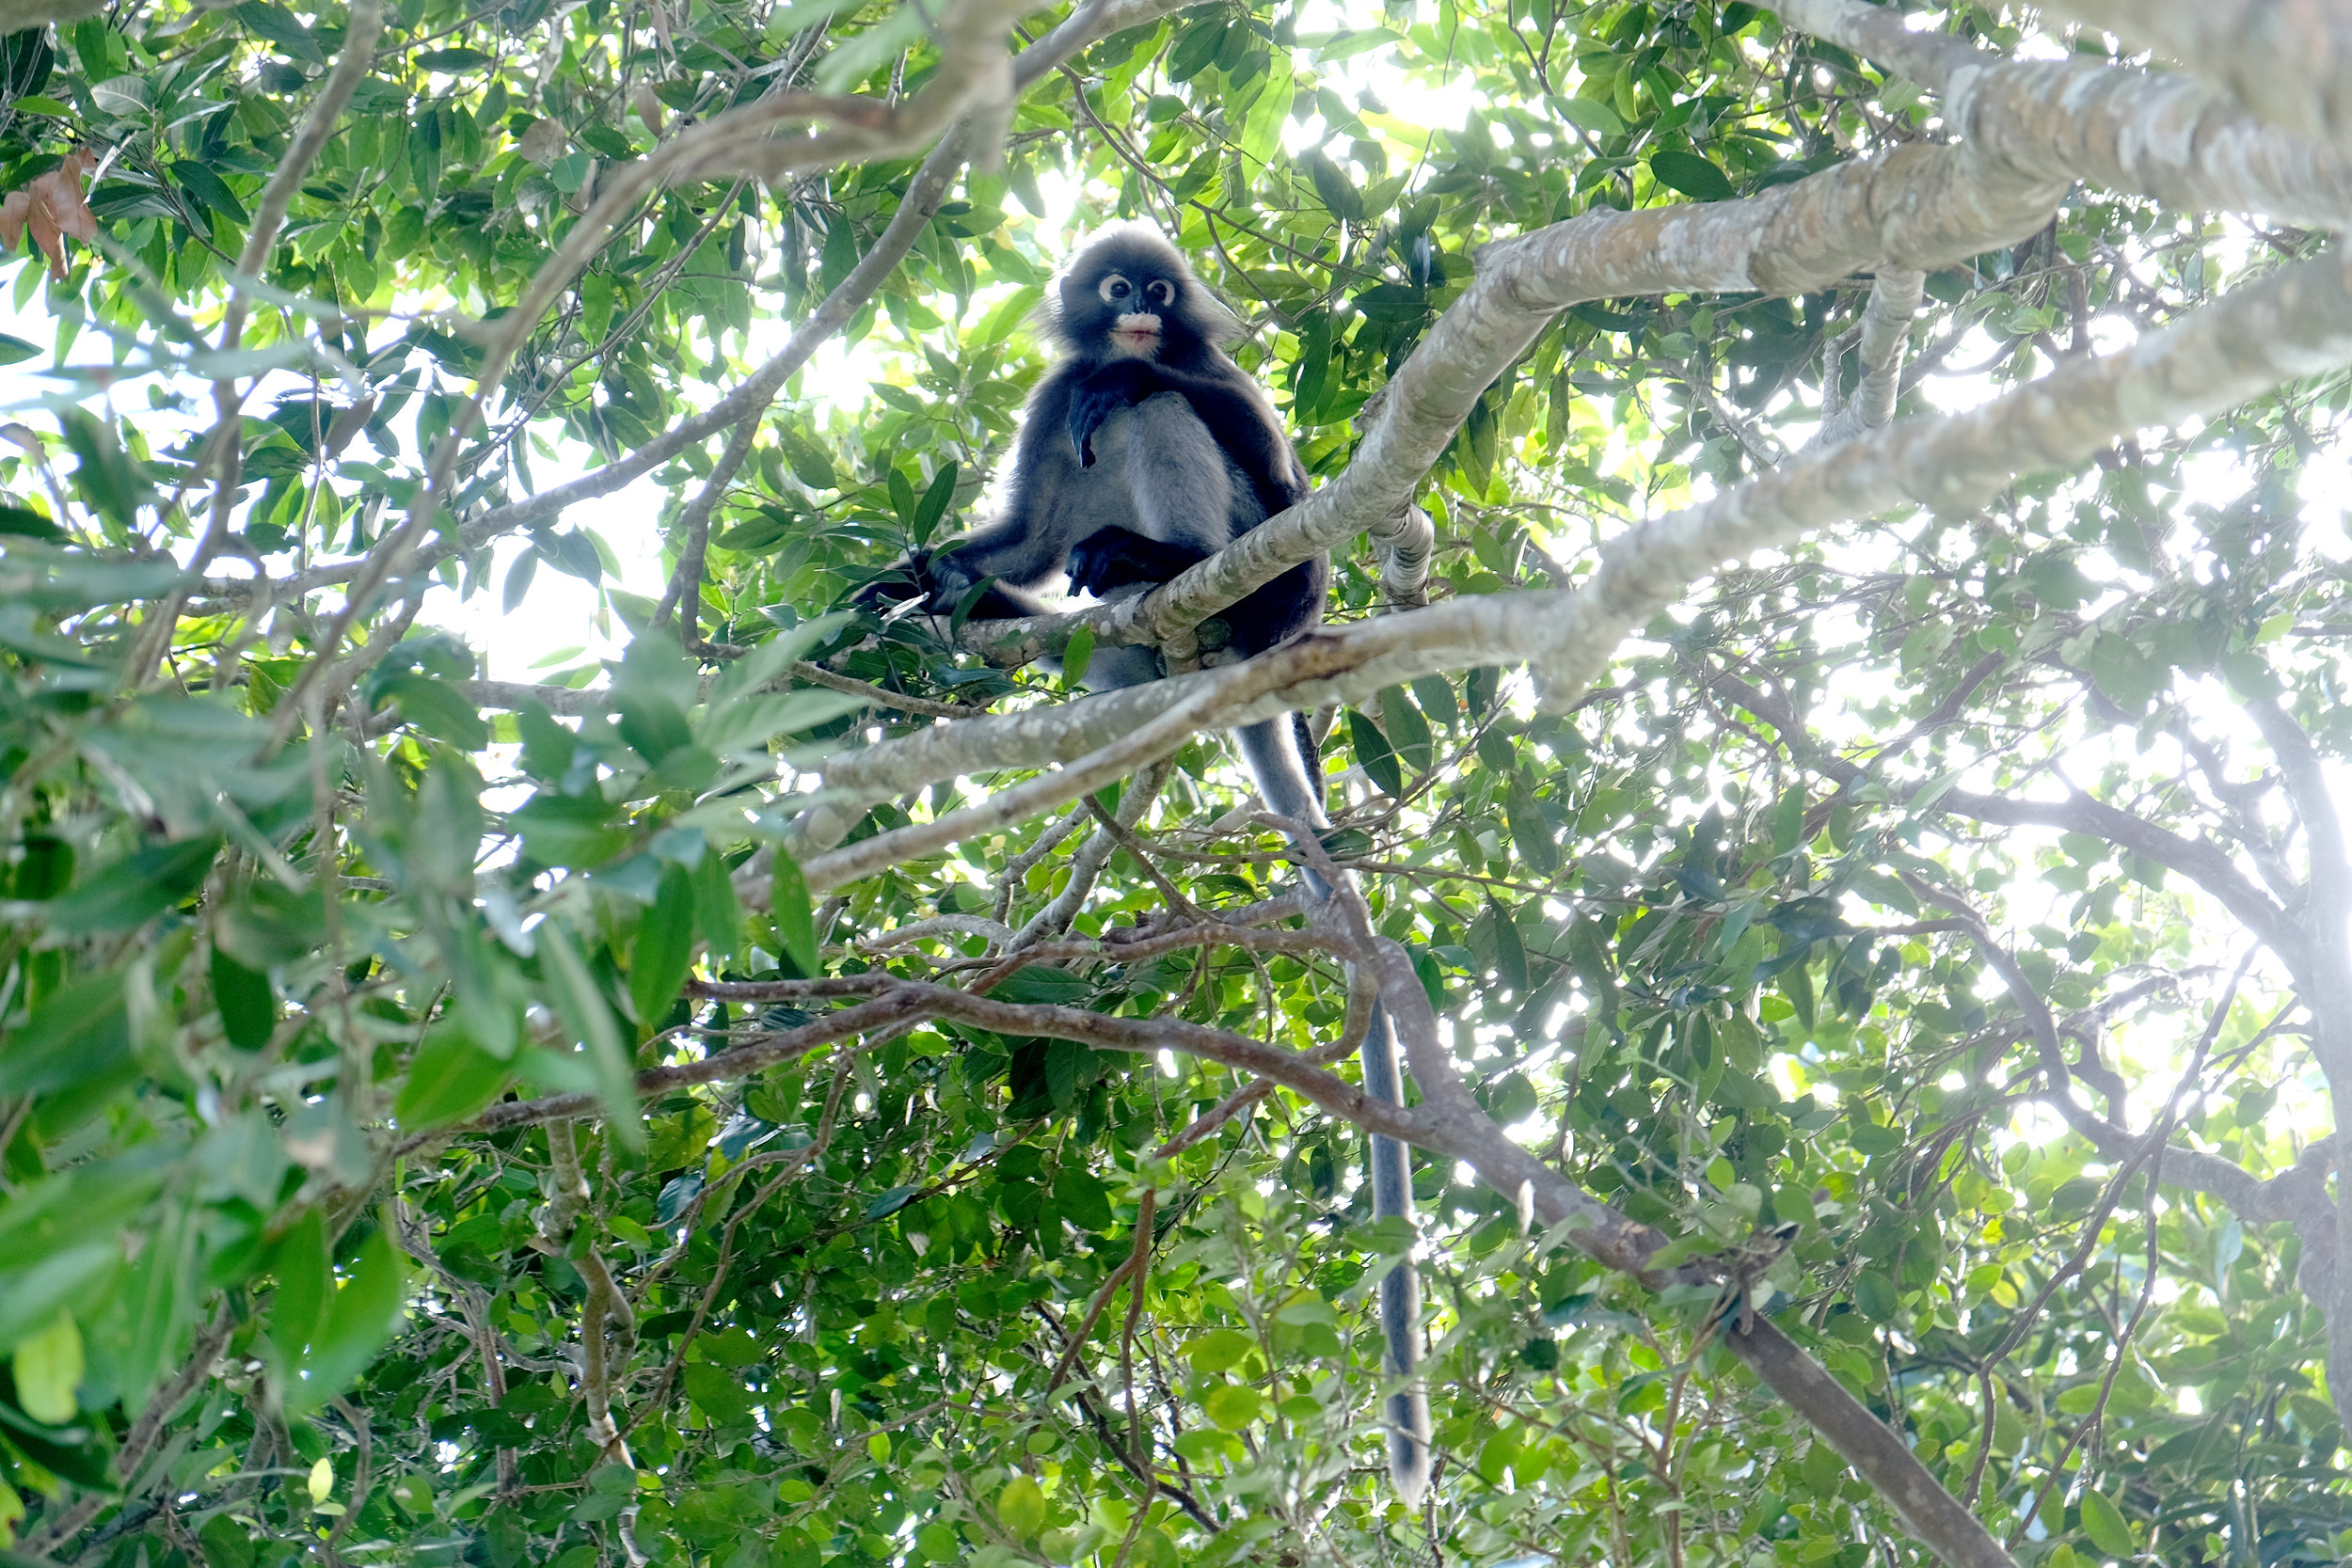 Dusky leaf monkey hoping for a handout